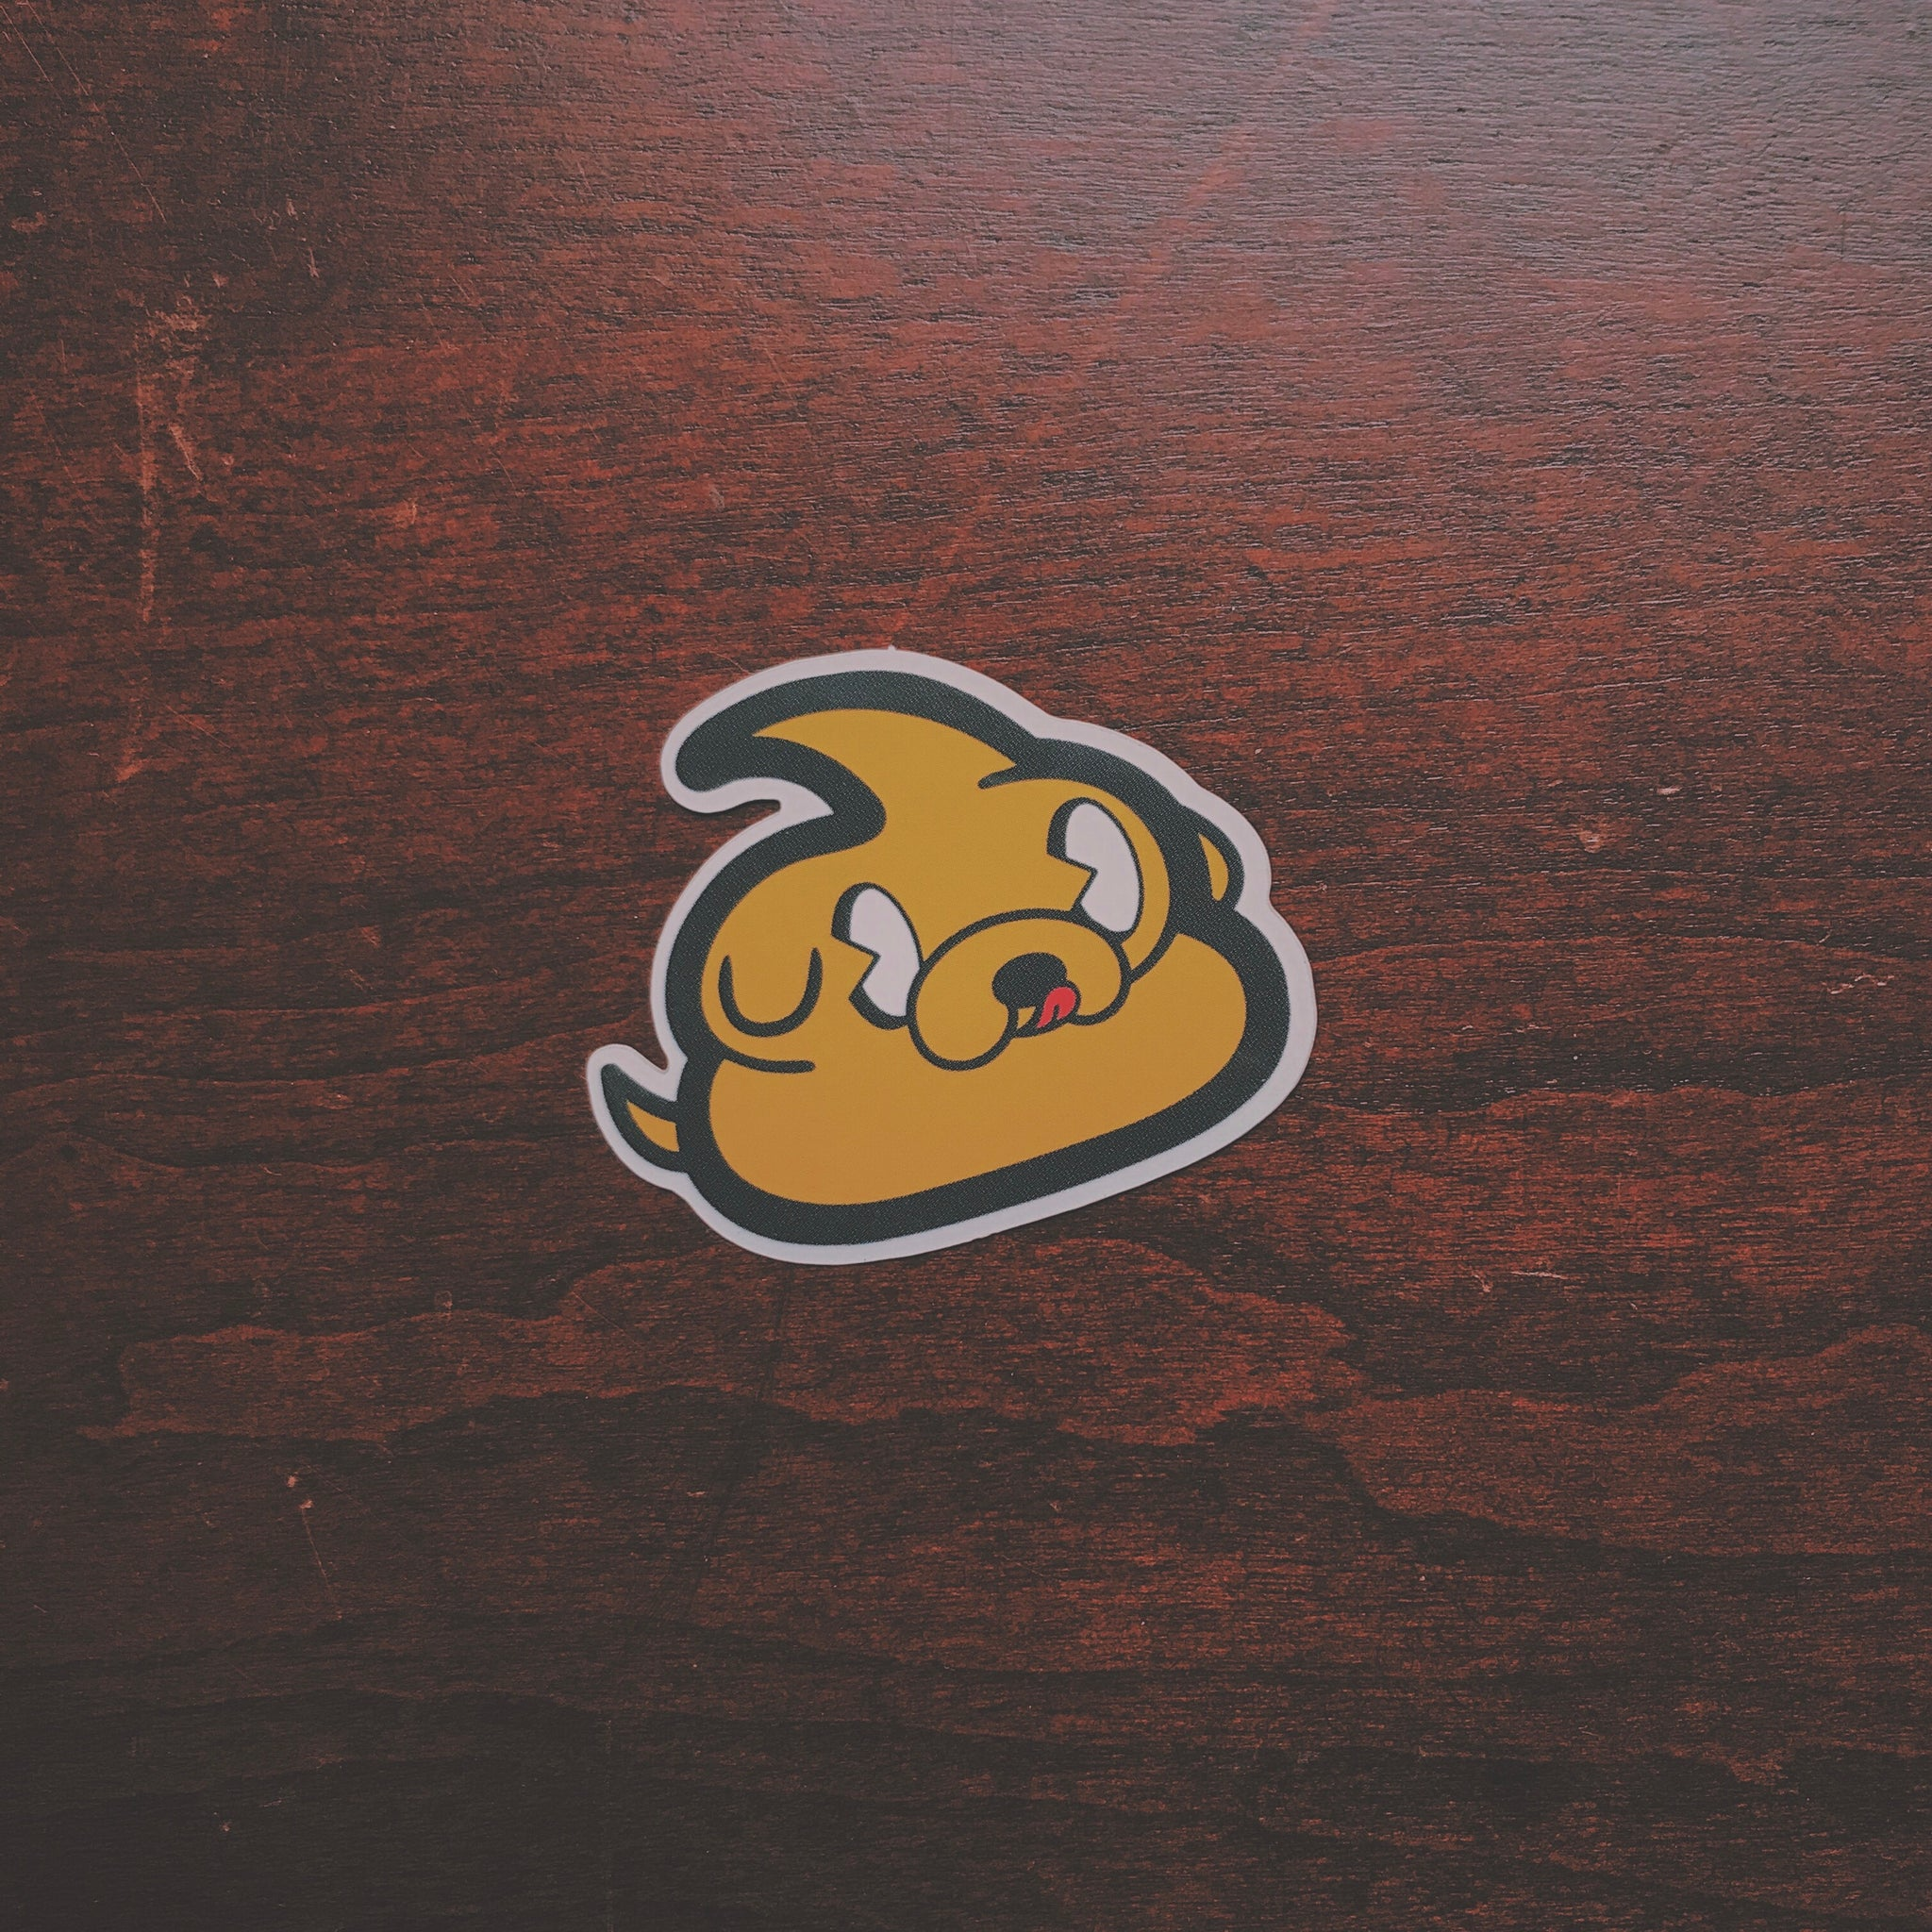 Jakey Poo Sticker